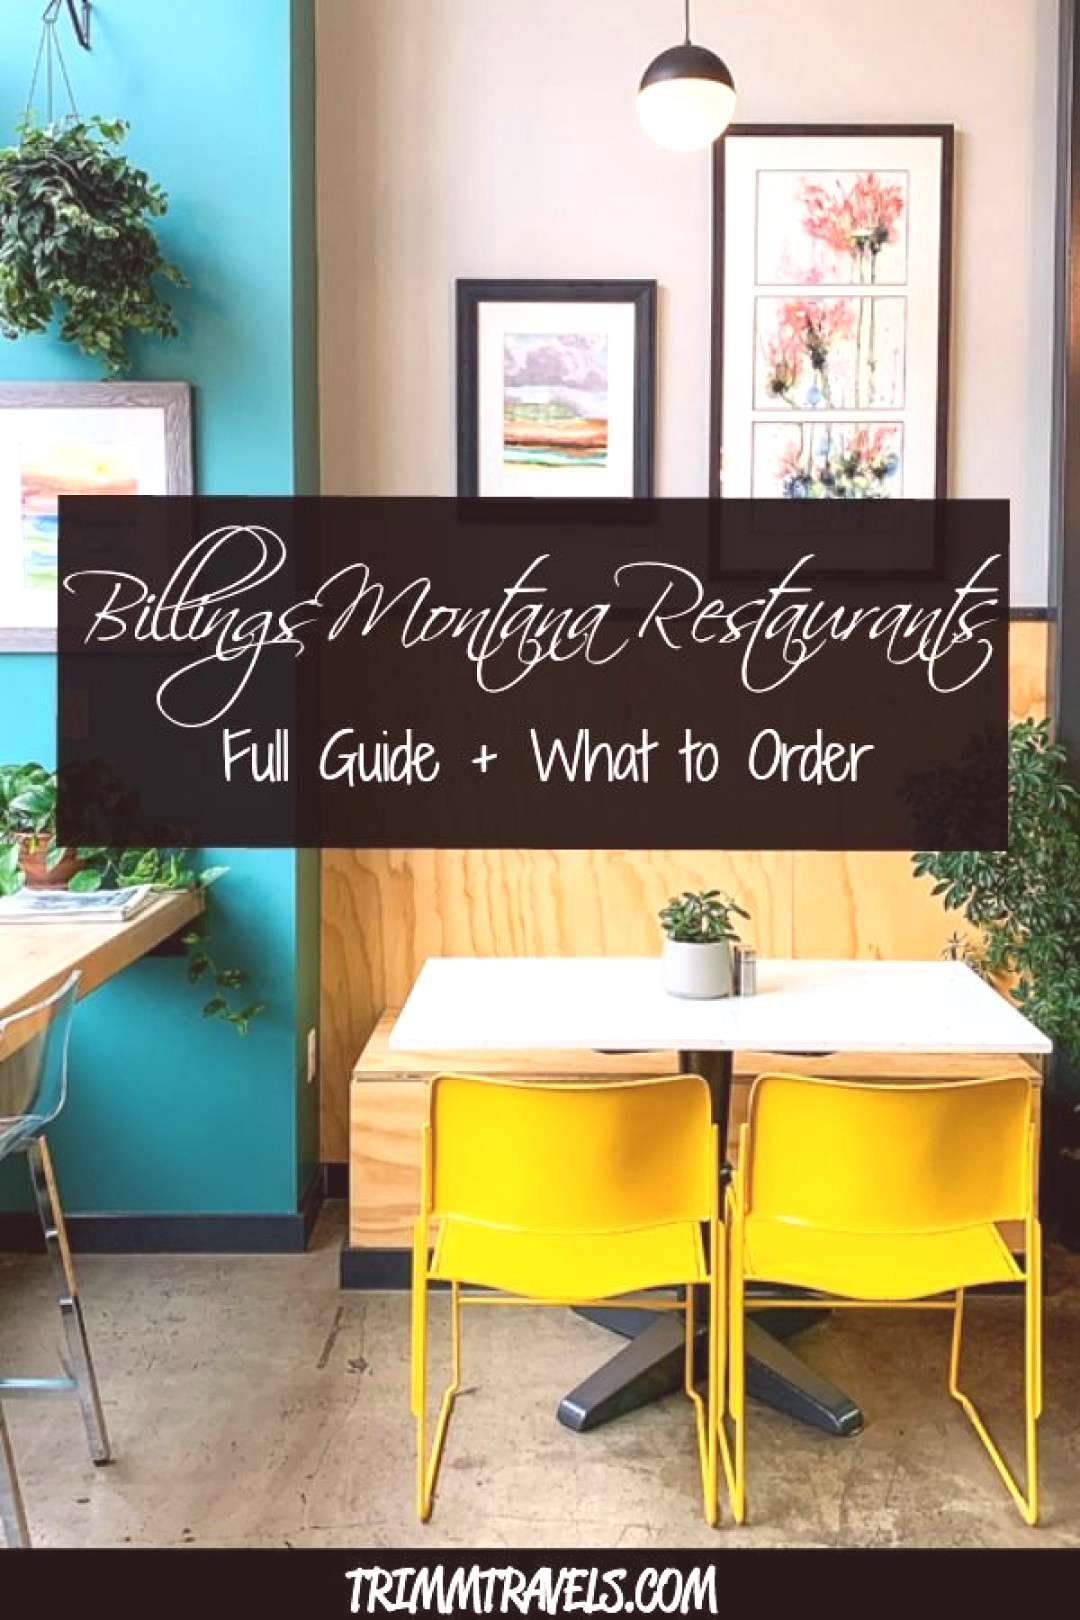 Billings Montana Restaurants: Full Guide + What to Order Surprise, it's a foodie city! I know what